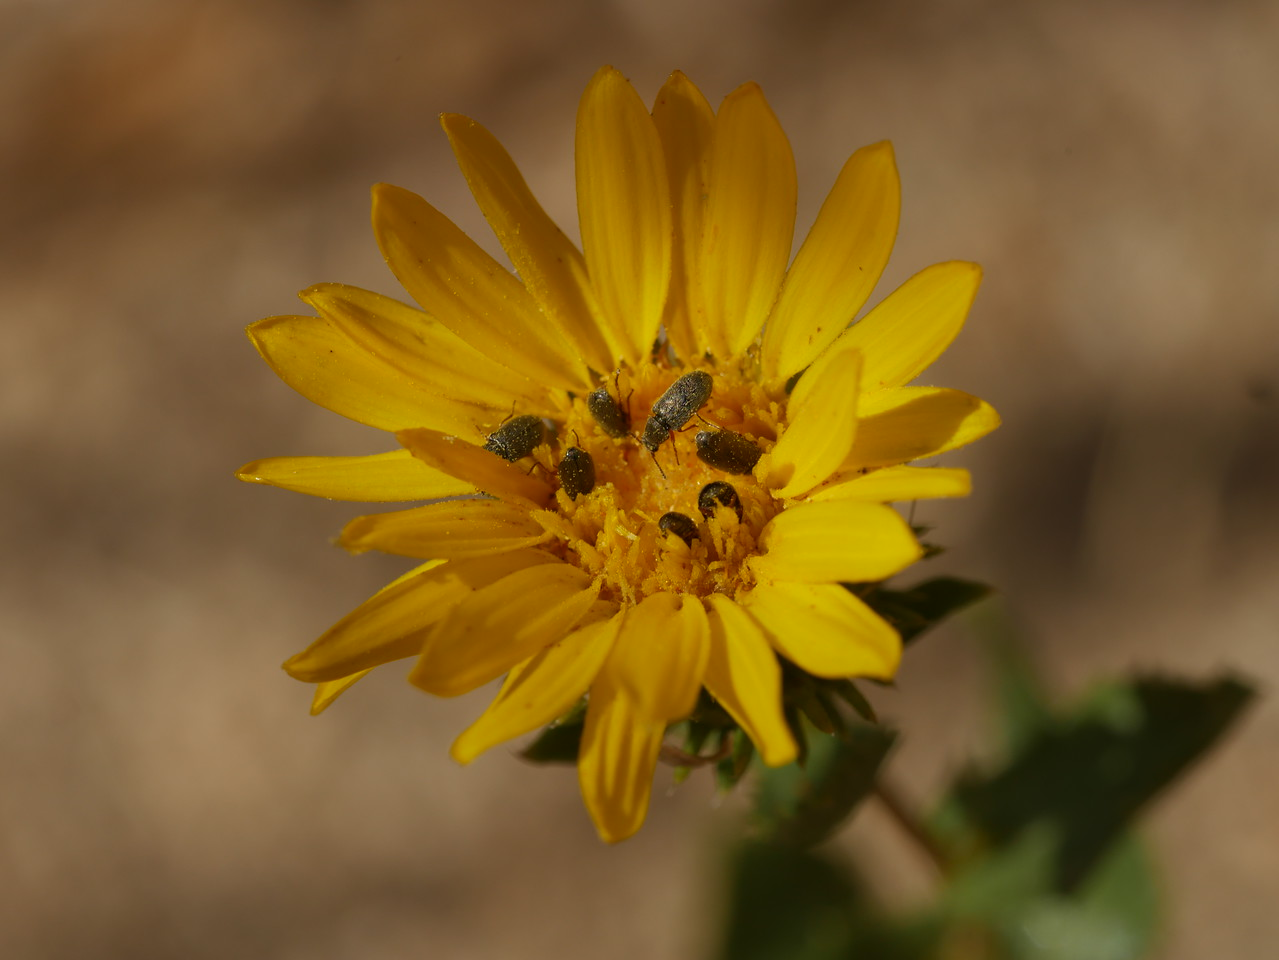 Most of the grindelia plants had finished blooming long ago.  If you are a hungry beetle, this was the only diner in town still open.